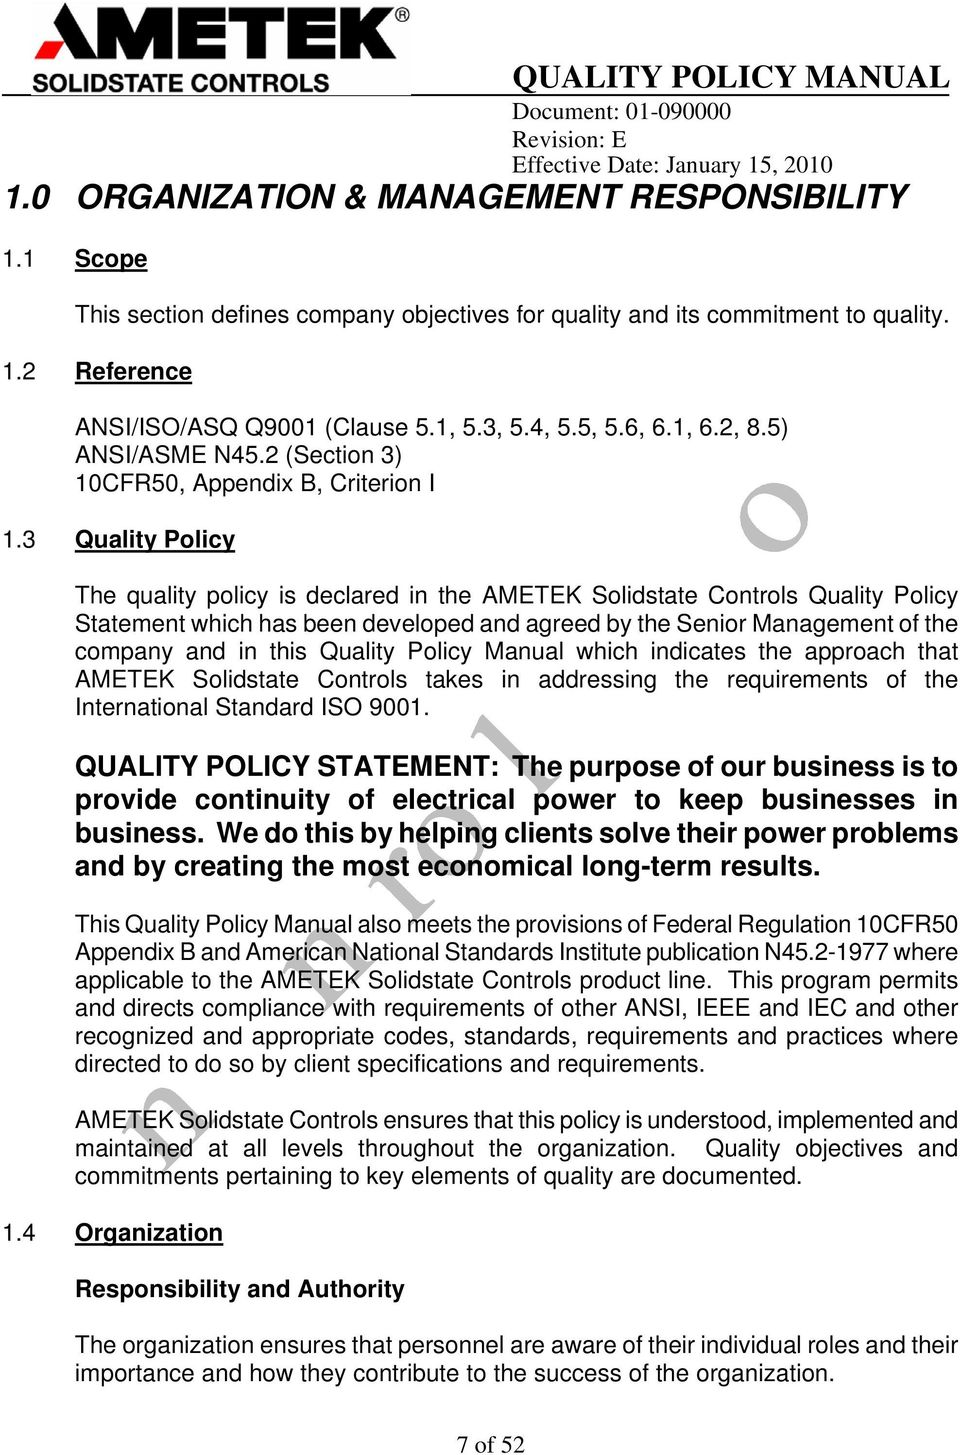 3 Quality Policy The quality policy is declared in the AMETEK Solidstate Controls Quality Policy Statement which has been developed and agreed by the Senior Management of the company and in this